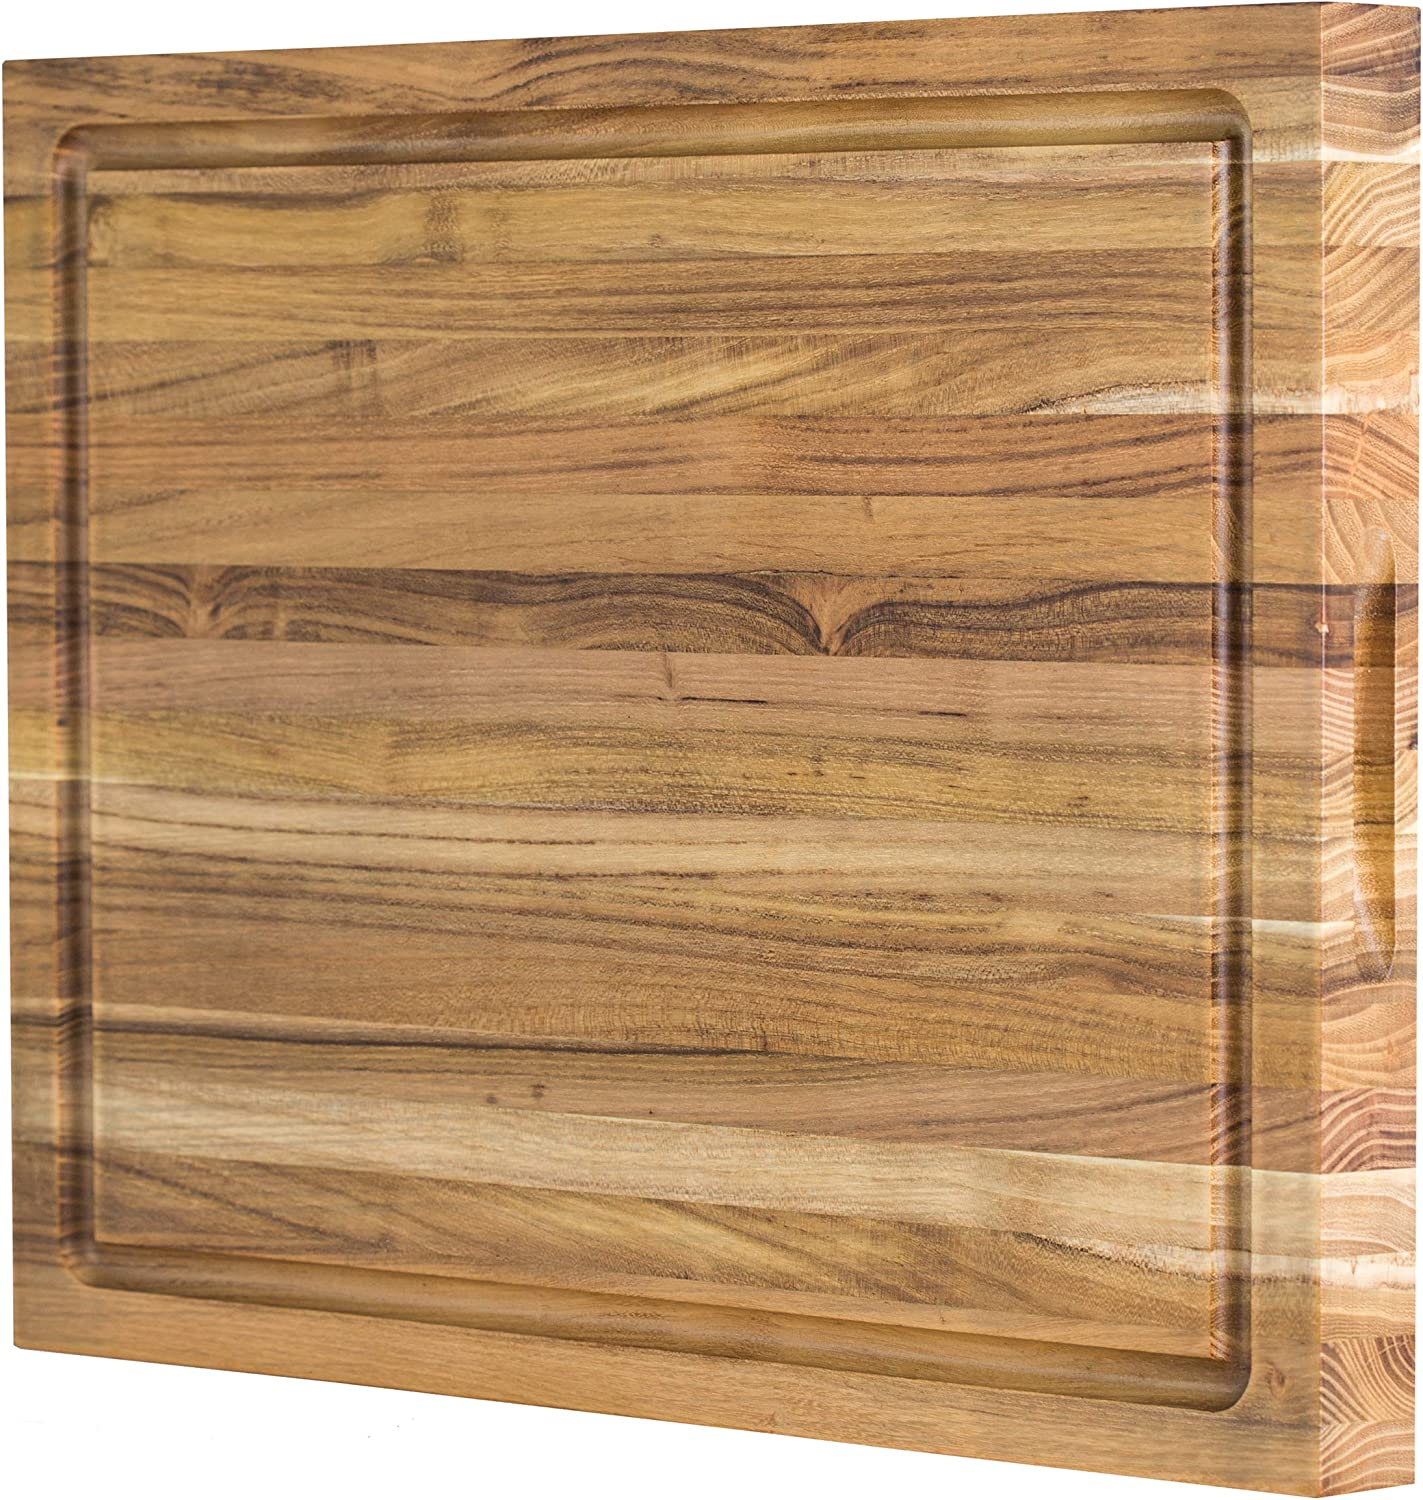 Large Reversible Teak Wood Cutting Board  18x14x1.25 with Juice Groove (Gift Box Included) by Sonder Los Angeles